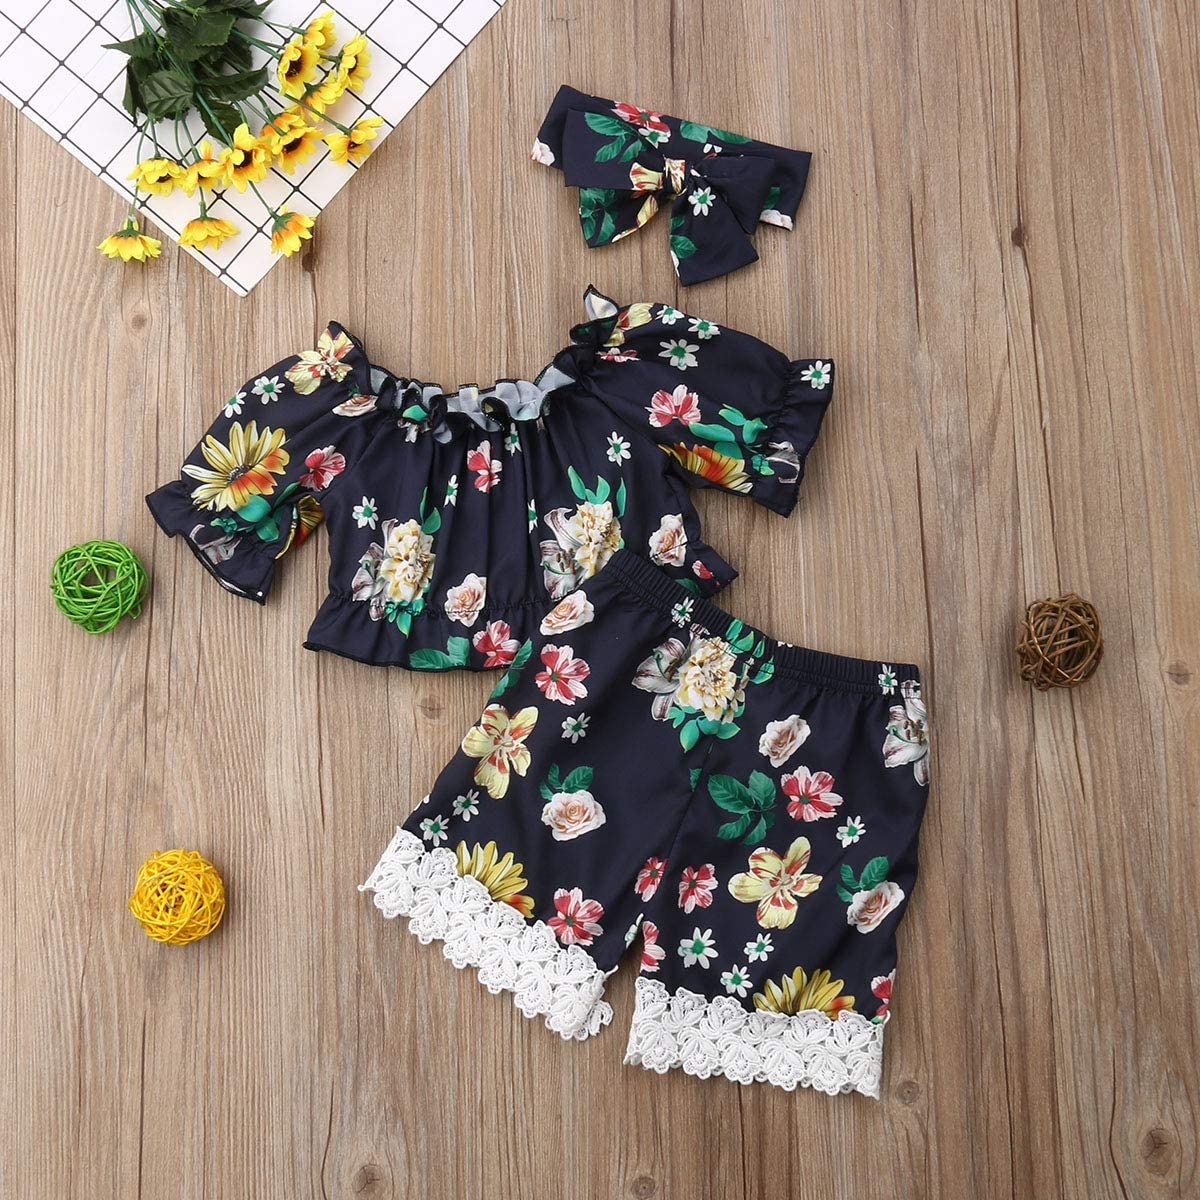 Newborn Baby Girl Floral Shorts Set Tube Off Shoulder Top+Lace Shorts Pant with Headband Infant Summer Outfit Clothes